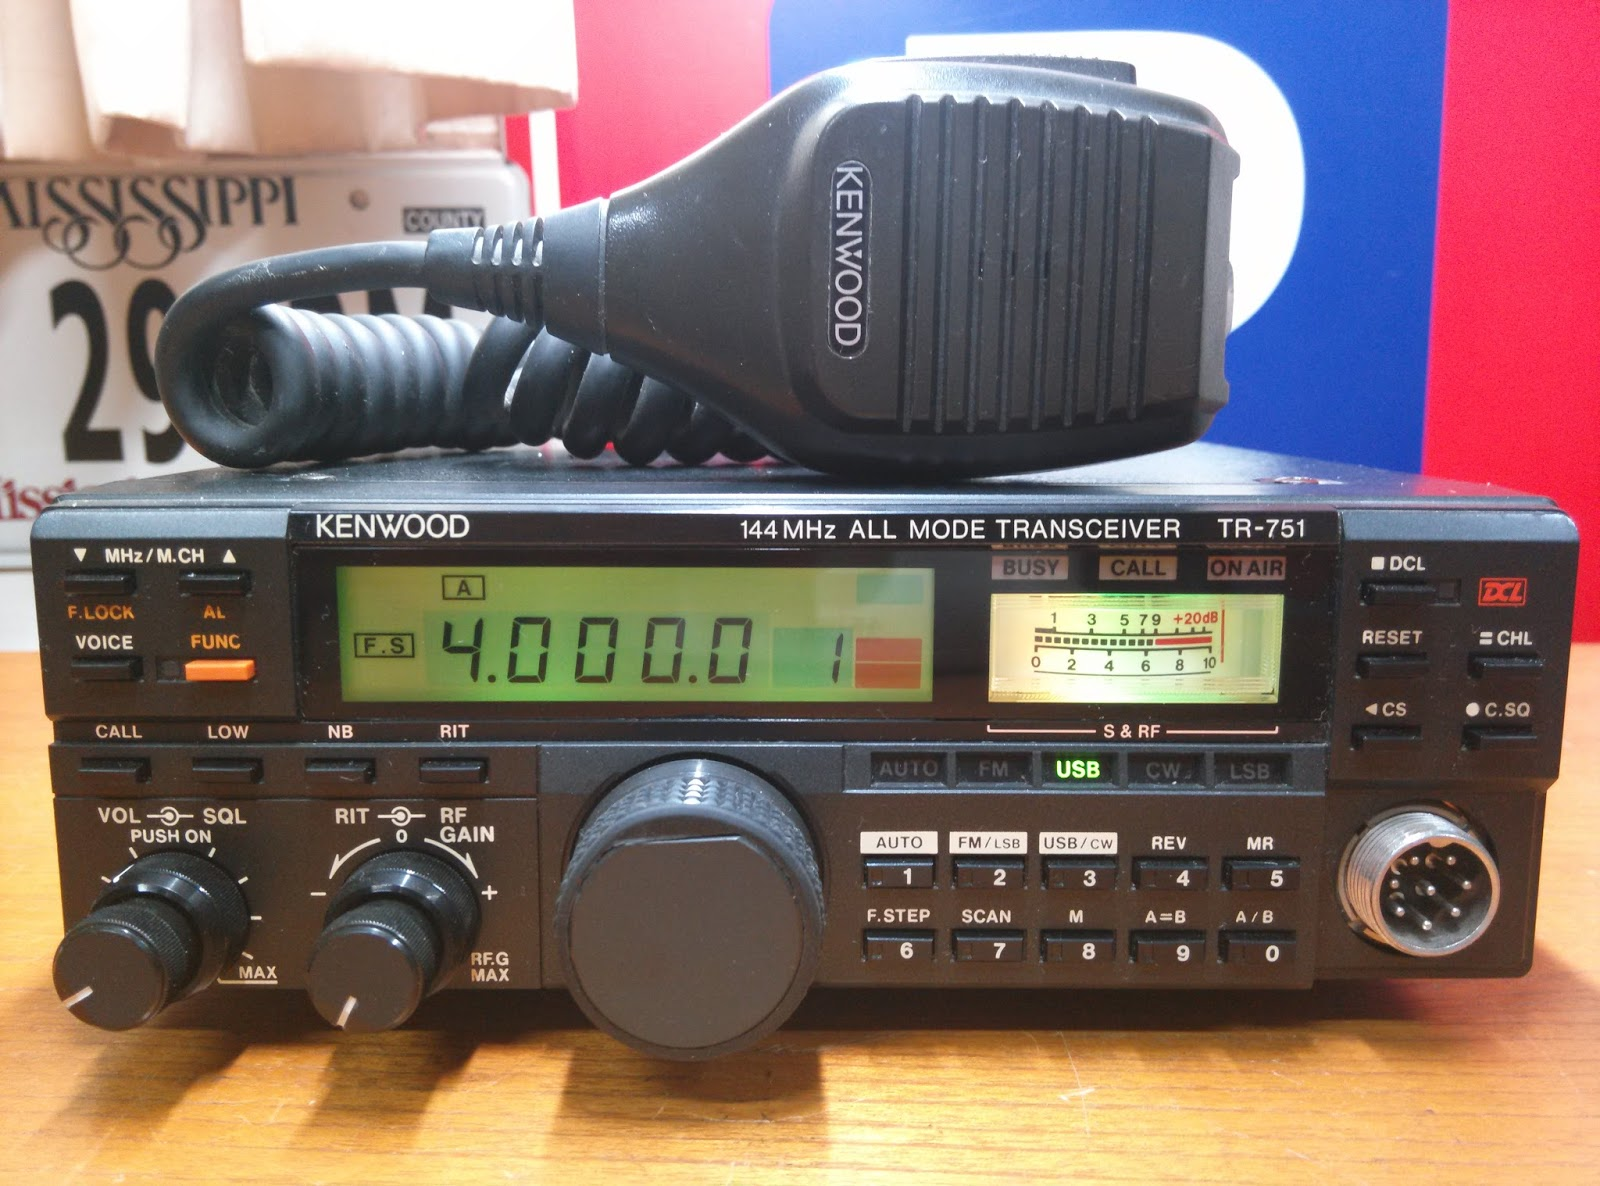 Heru-RadioMart: KENWOOD TR-751 VHF ALL MODE TRANSCEIVER S/N